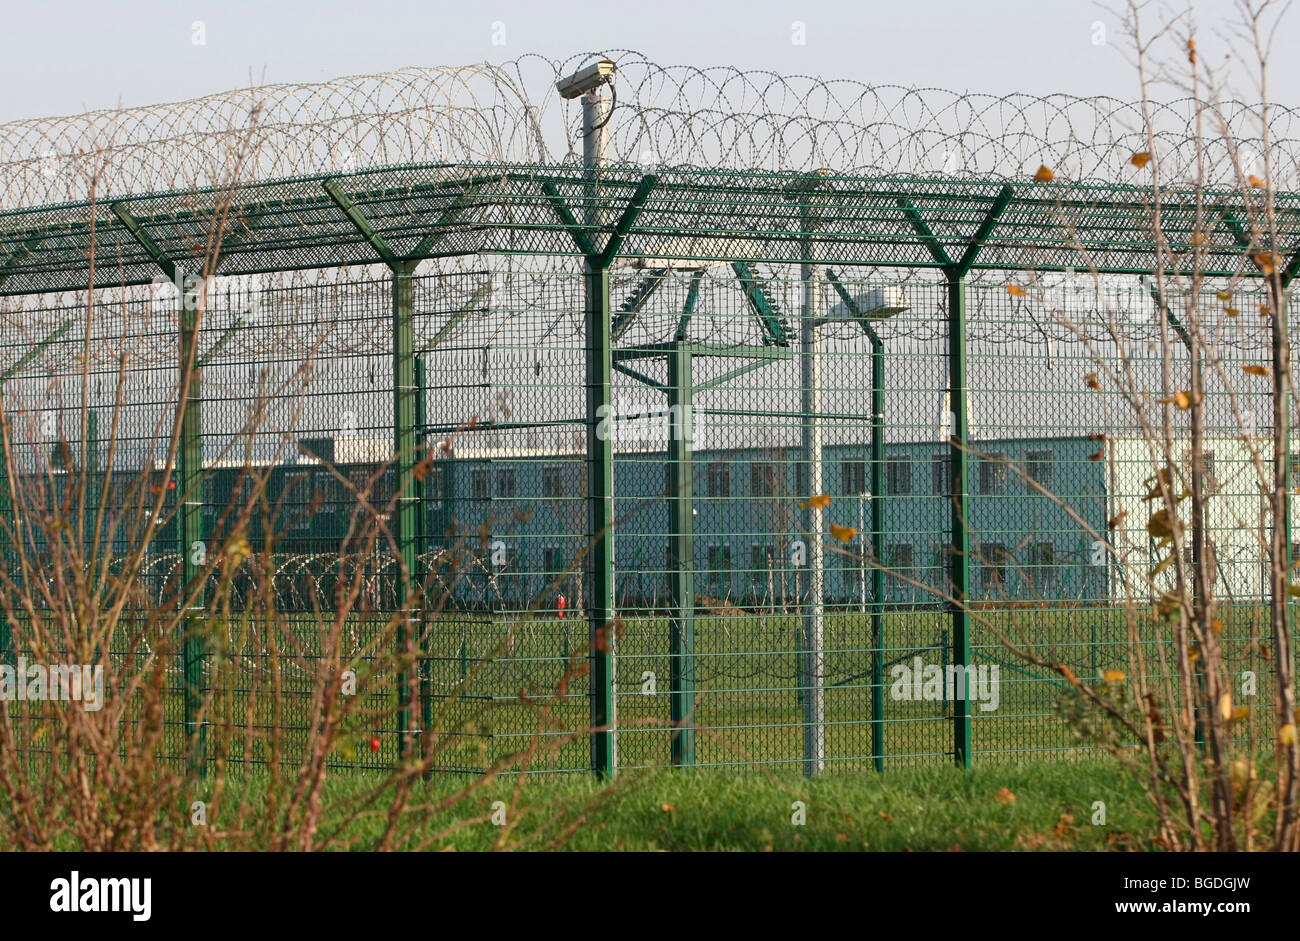 Double fences surrounding the Nettegut psychiatric clinic where many criminal offenders are housed, Weissenthurm, - Stock Image